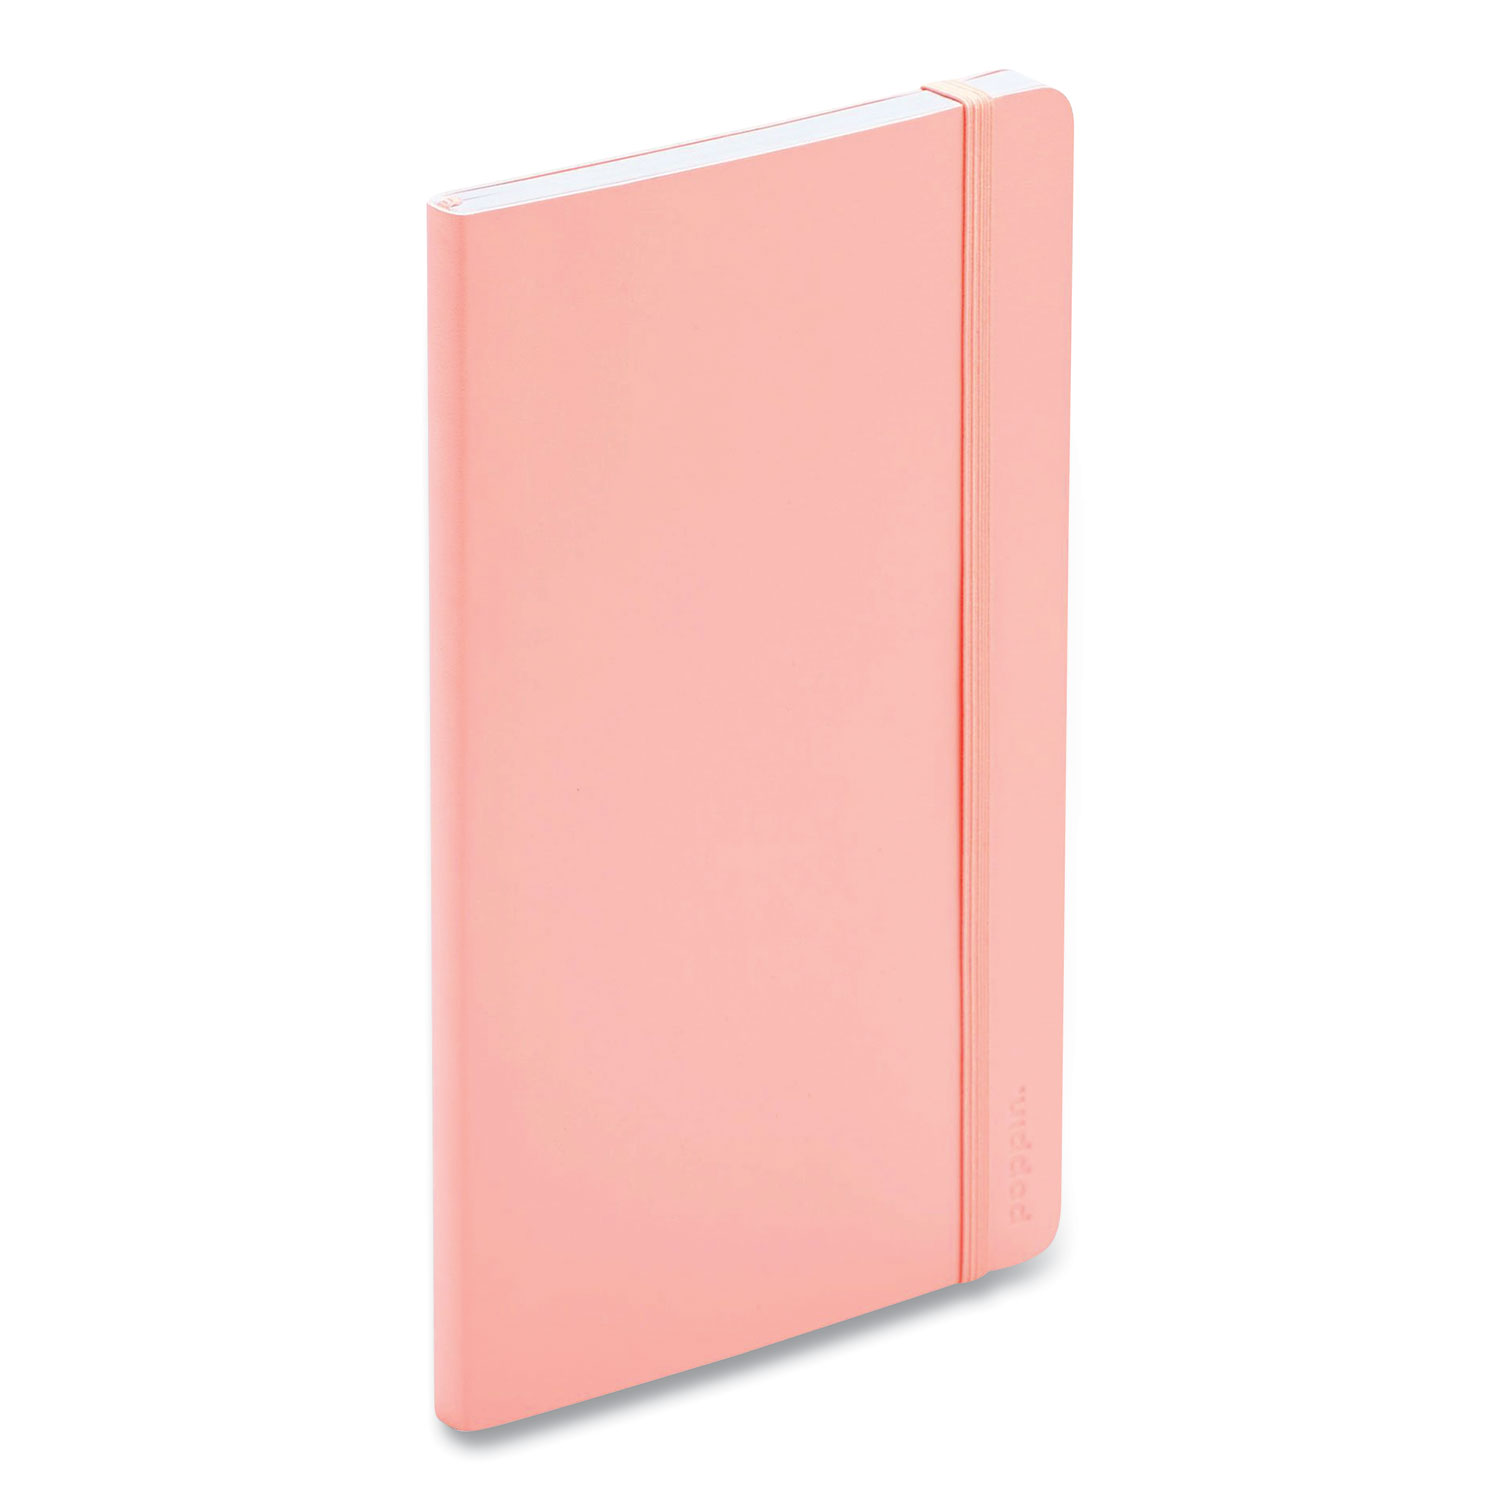 Picture of Medium Softcover Notebook, 8.25 x 5, Blush, 192 Sheets